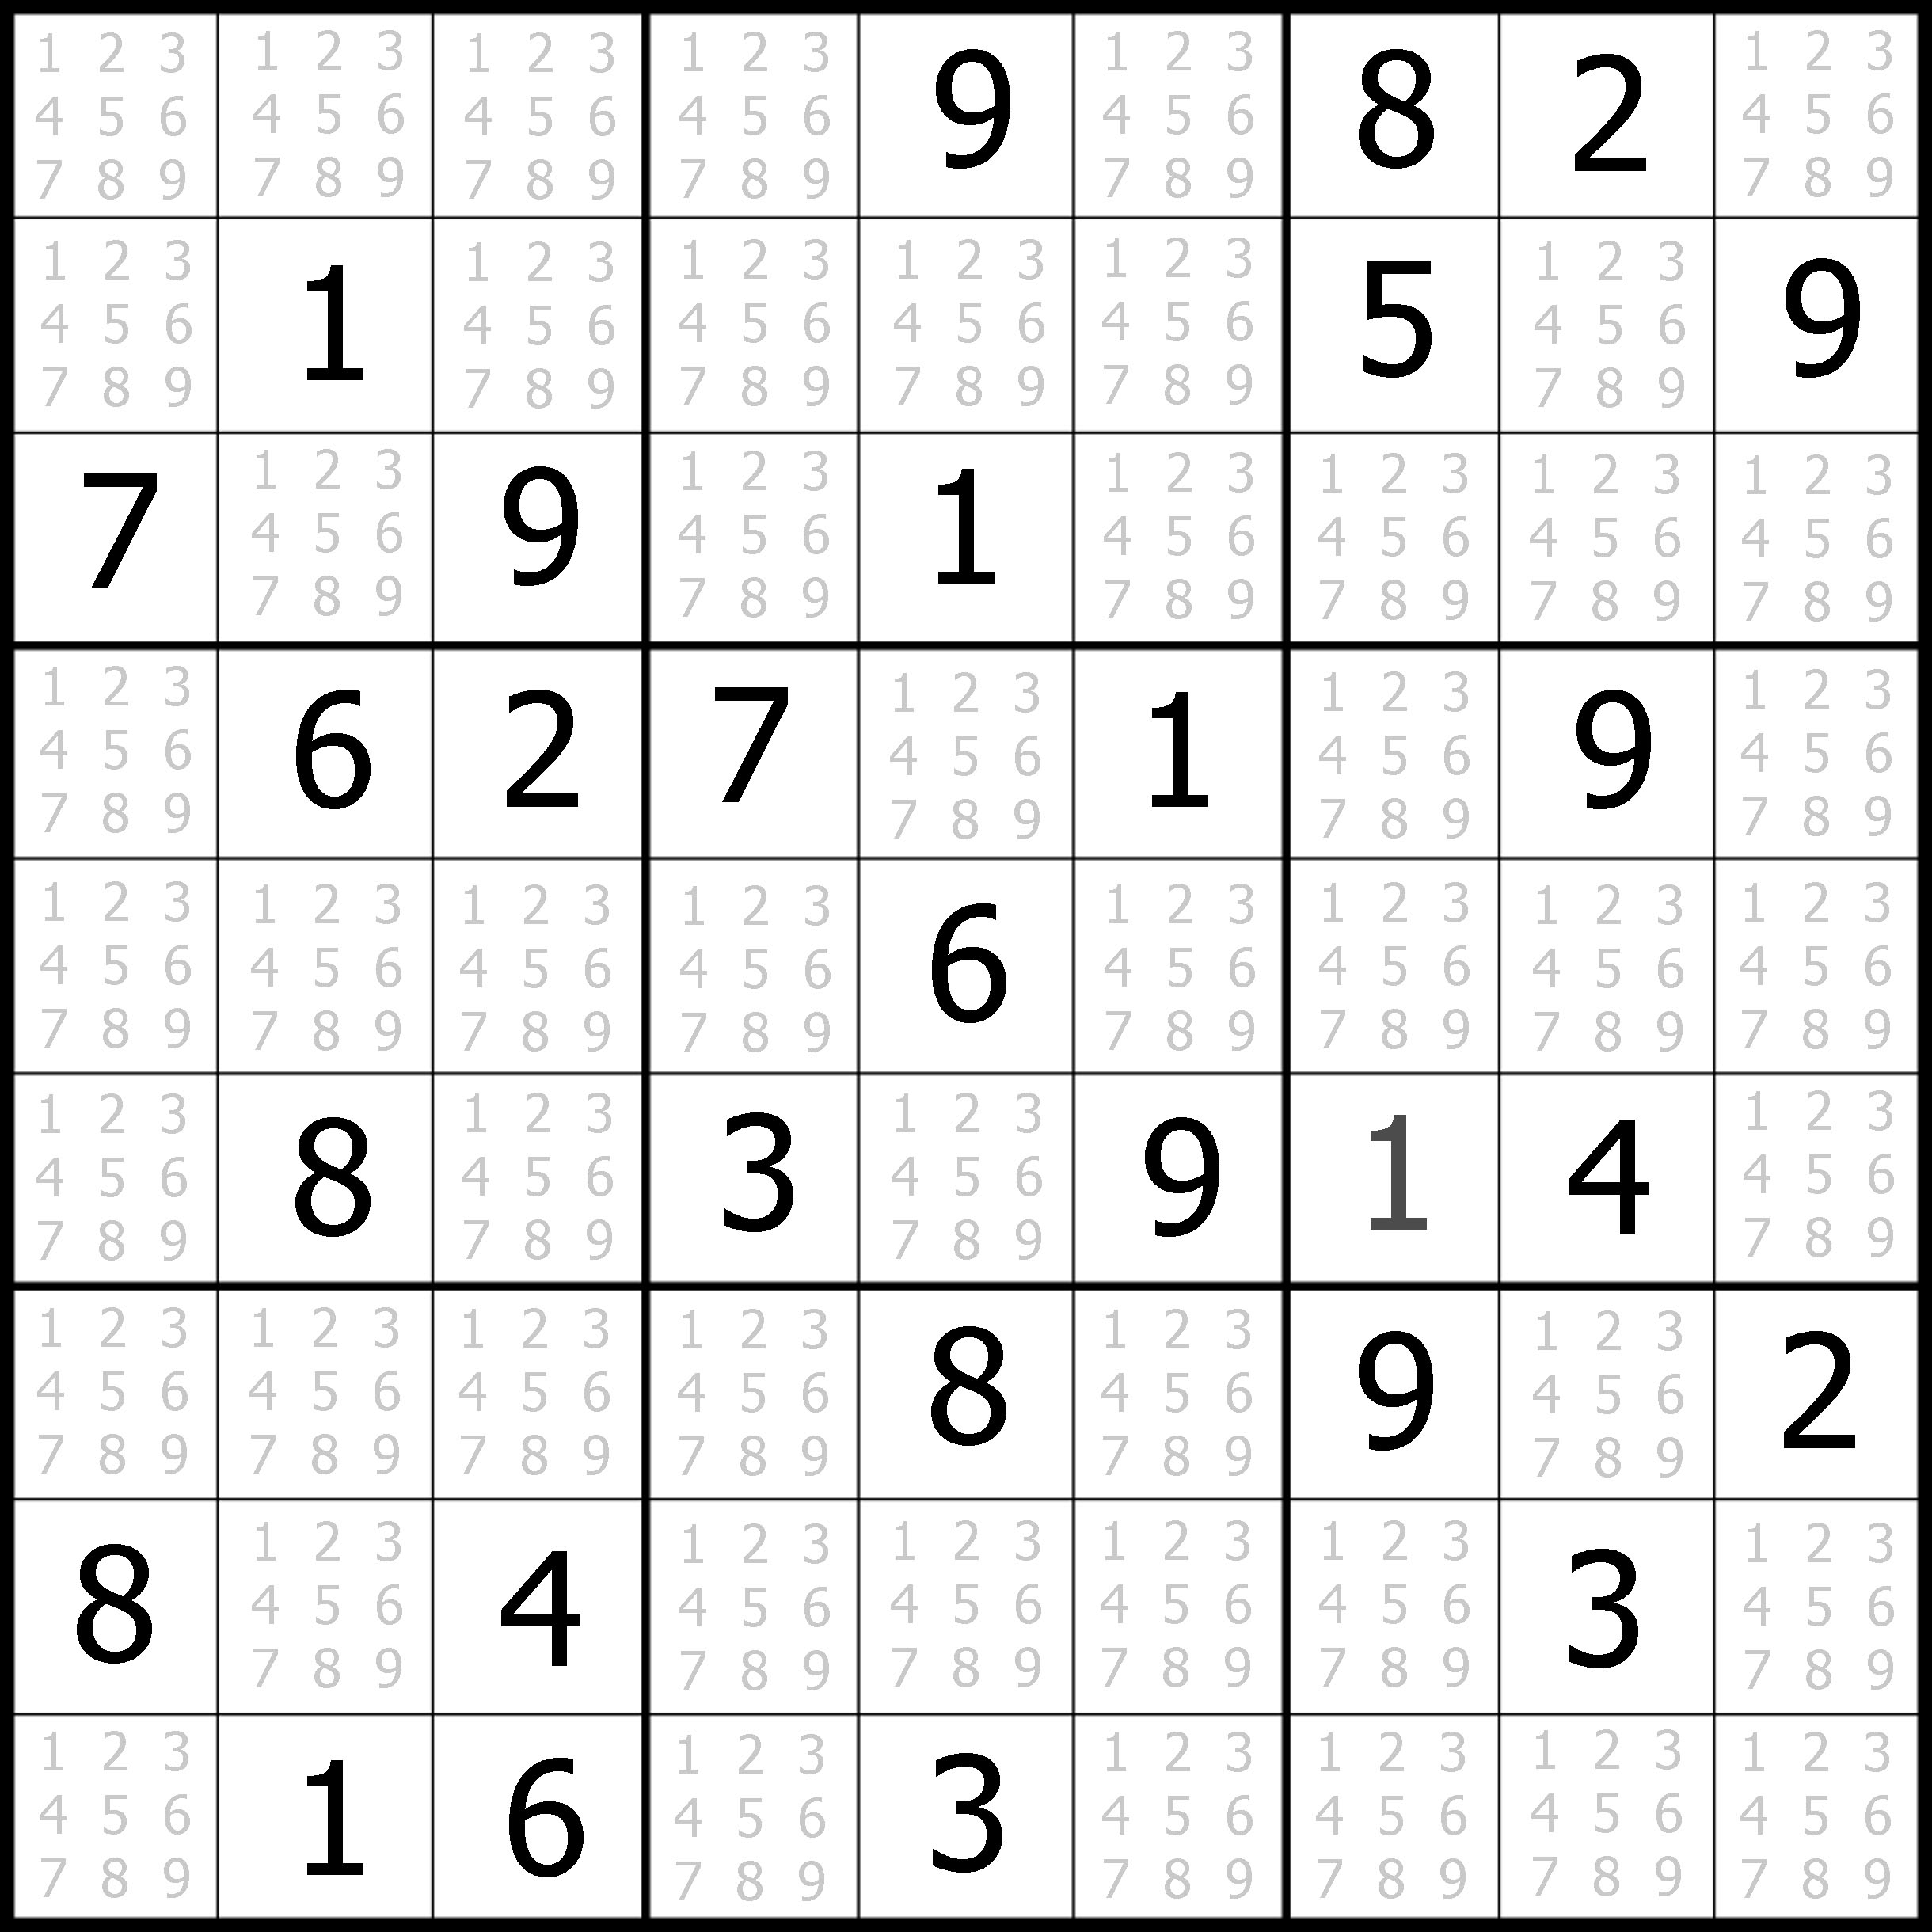 Sudoku Puzzler | Free, Printable, Updated Sudoku Puzzles With A - Printable Sudoku Puzzle Easy